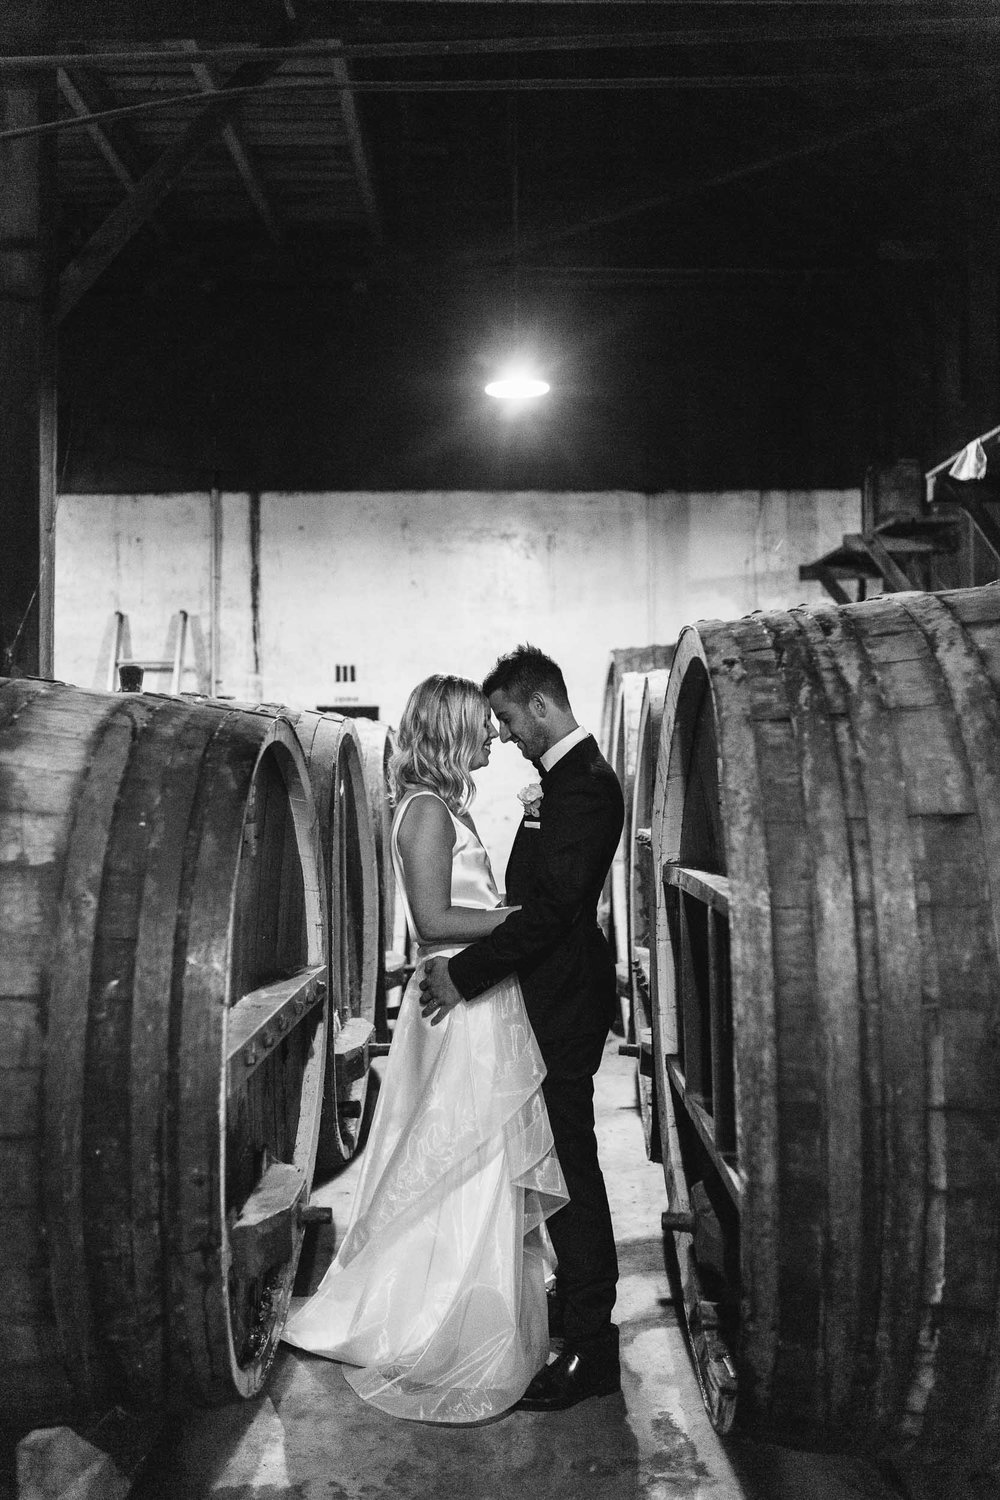 Kas-Richards-Wedding-Photographer-Country-Winery-Wedding-One-Day-Bridal-Gown-64.jpg